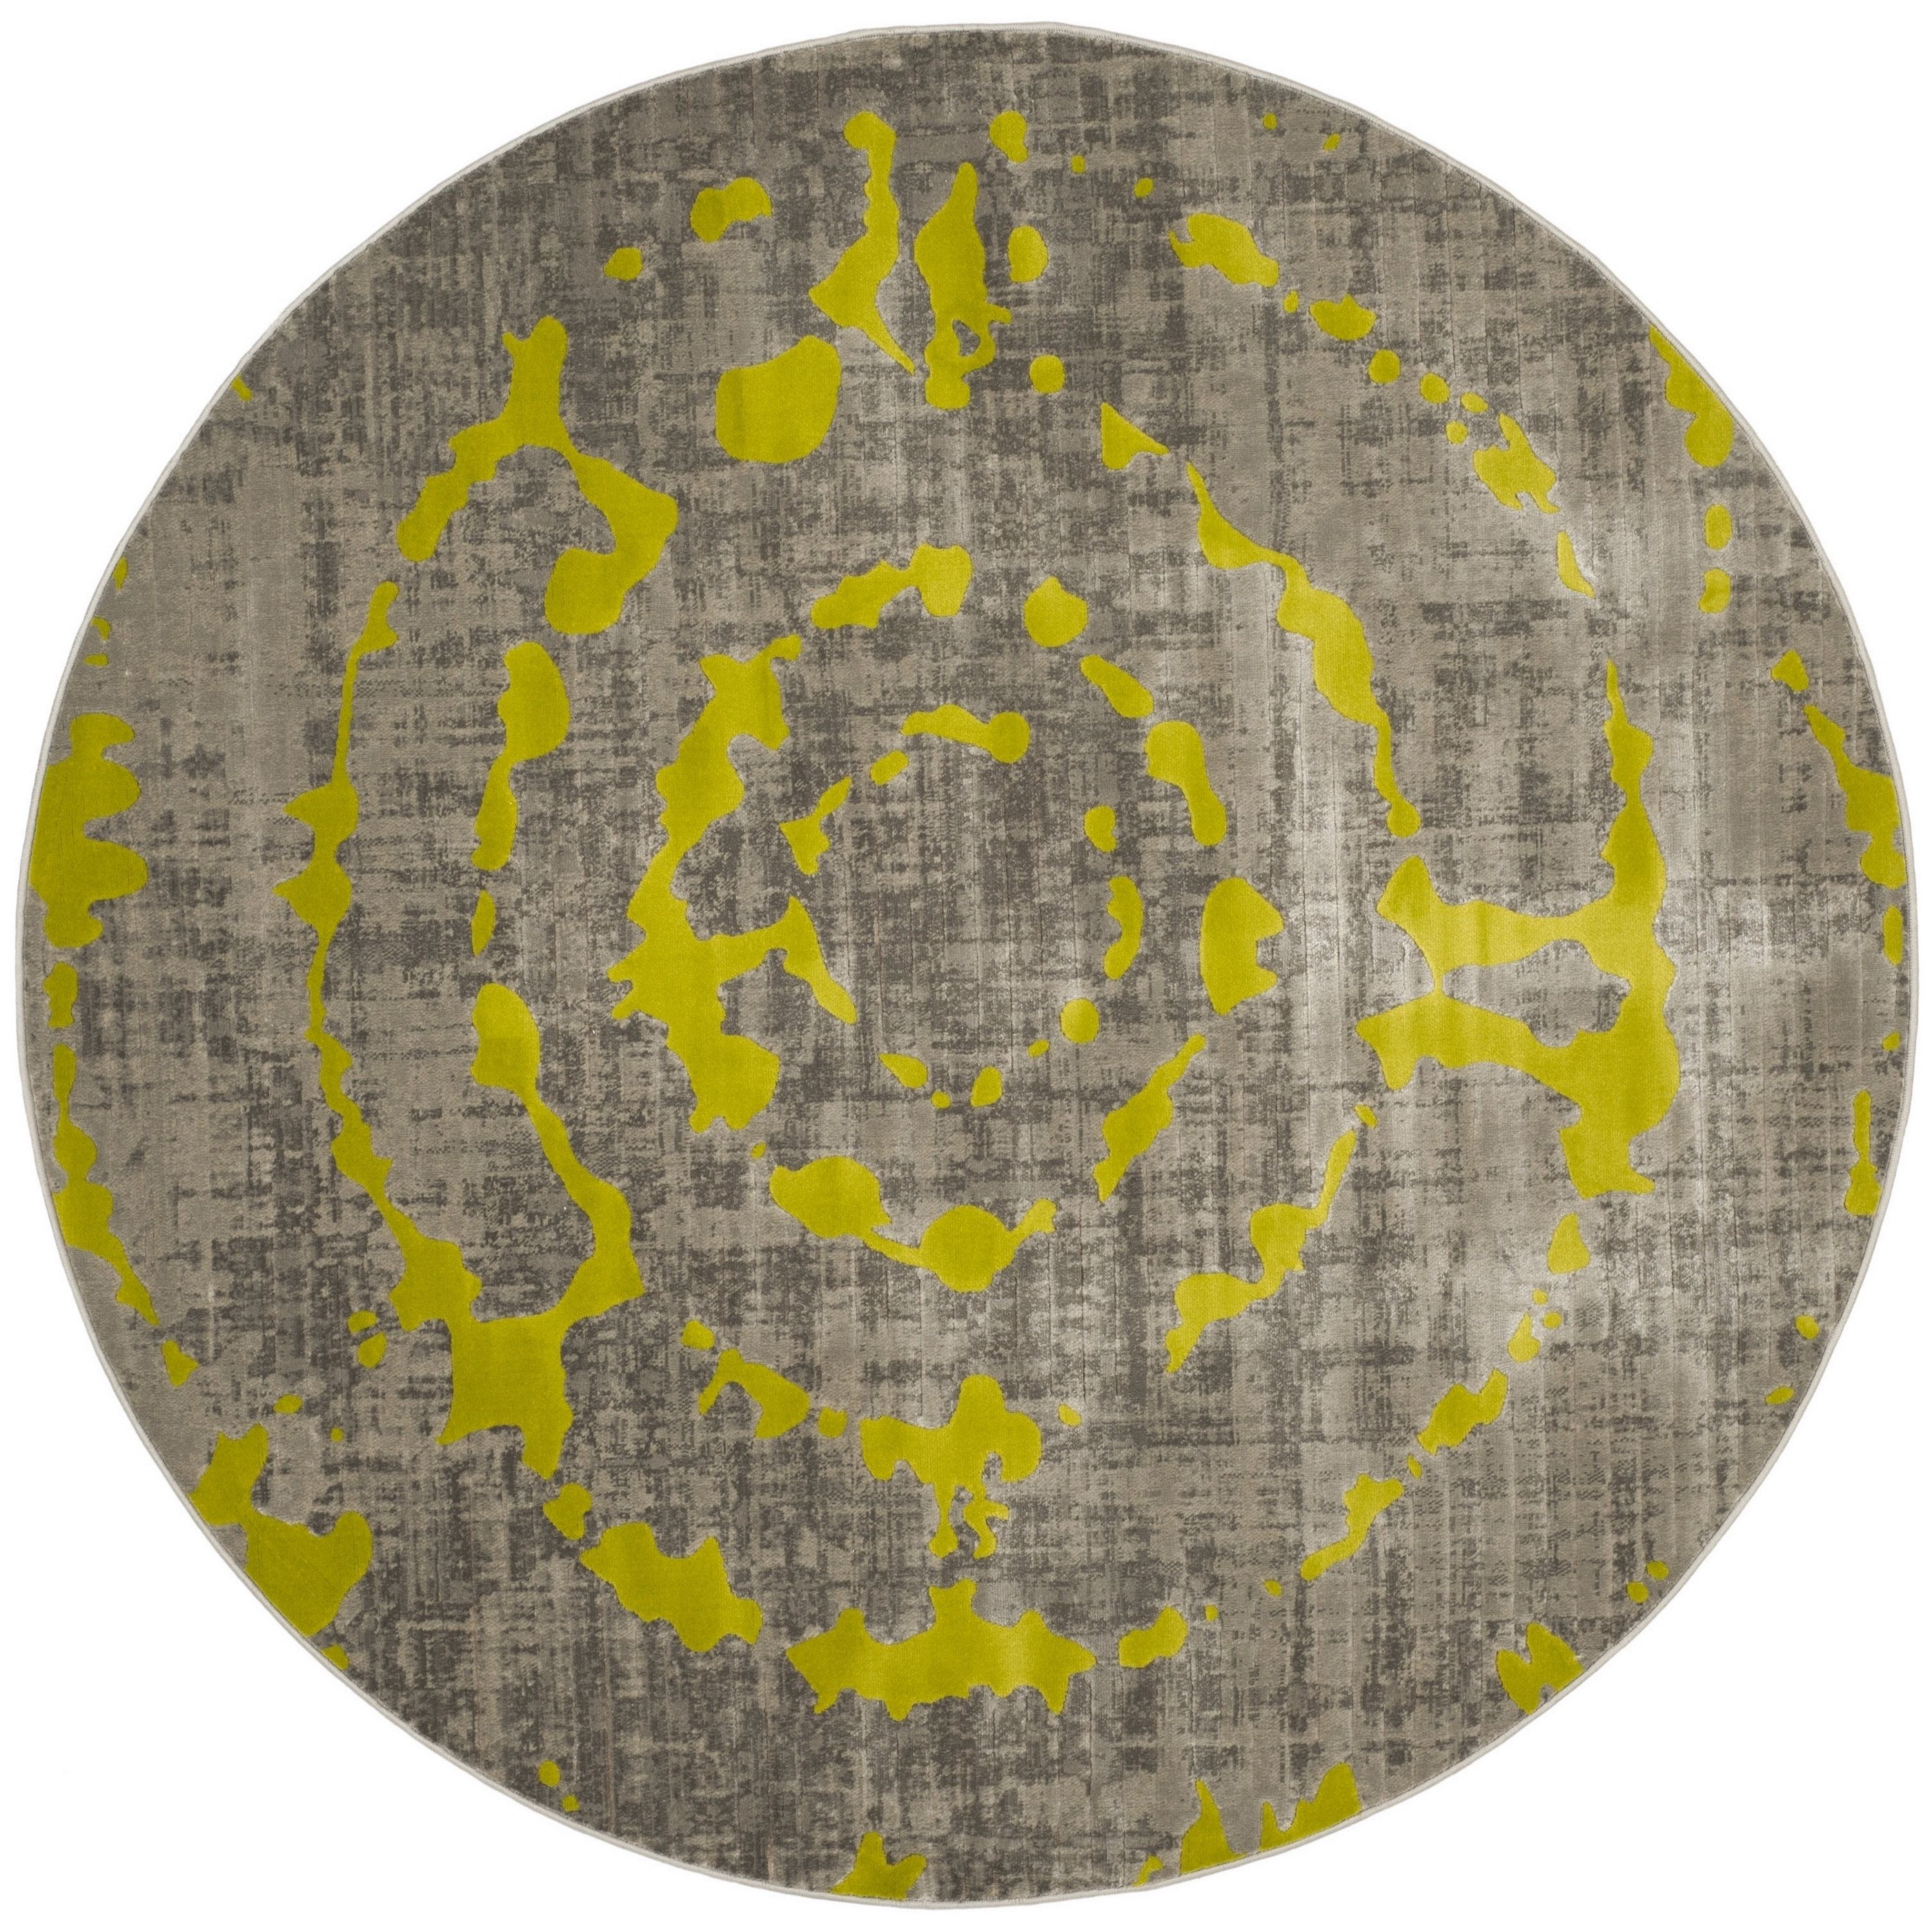 Safavieh Porcello Abstract Contemporary Light Grey/ Green Rug (6'7 Round) | Overstock.com Shopping - The Best Deals on Round/Oval/Square